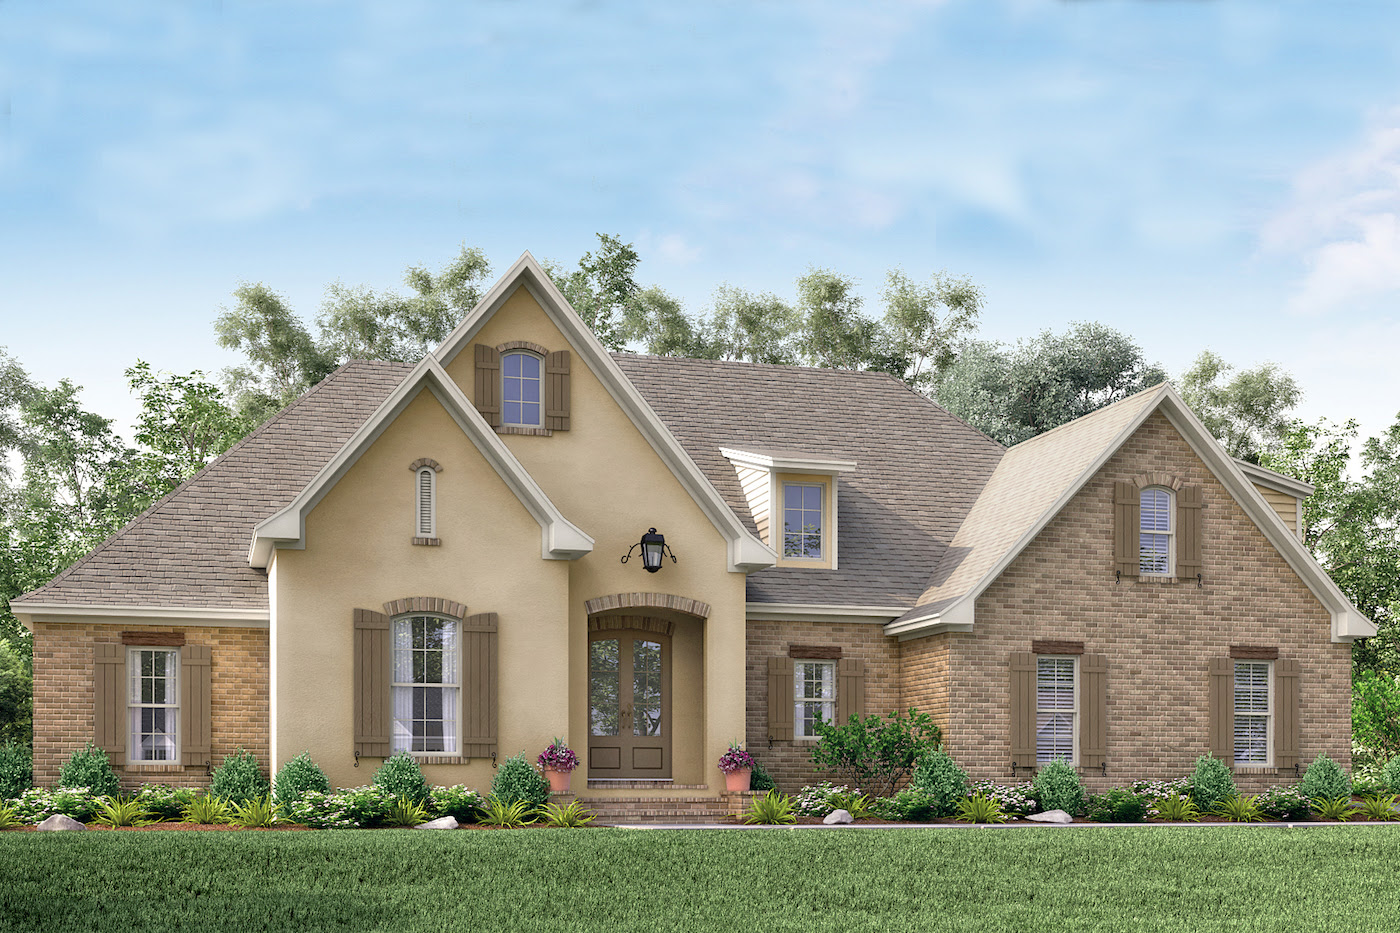 Acadian House Plan 1421154: 4 Bedrm, 2210 Sq Ft Home Plan